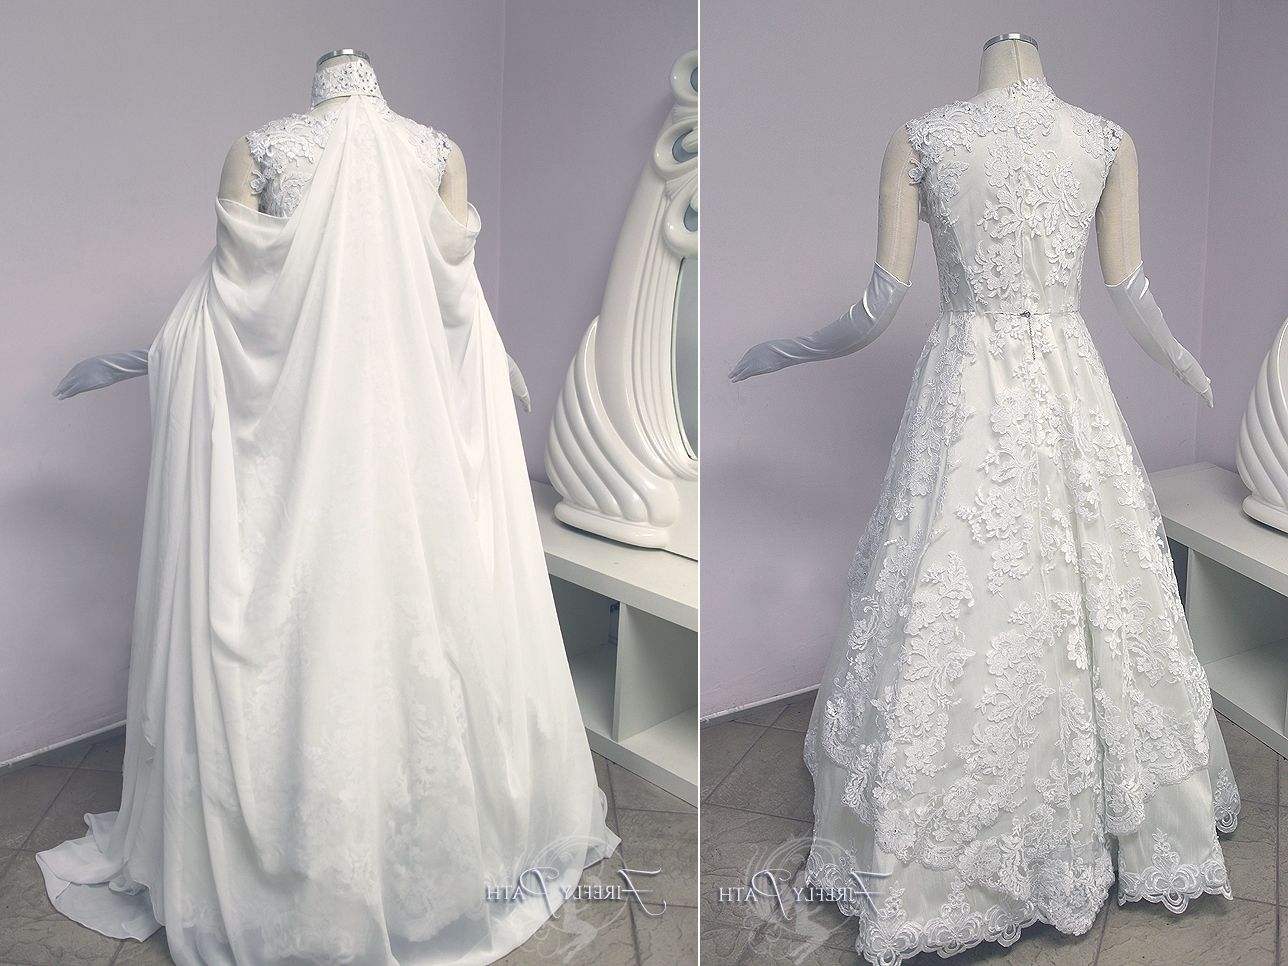 Legend Of Zelda Inspired Wedding Dress | all things wedding ...